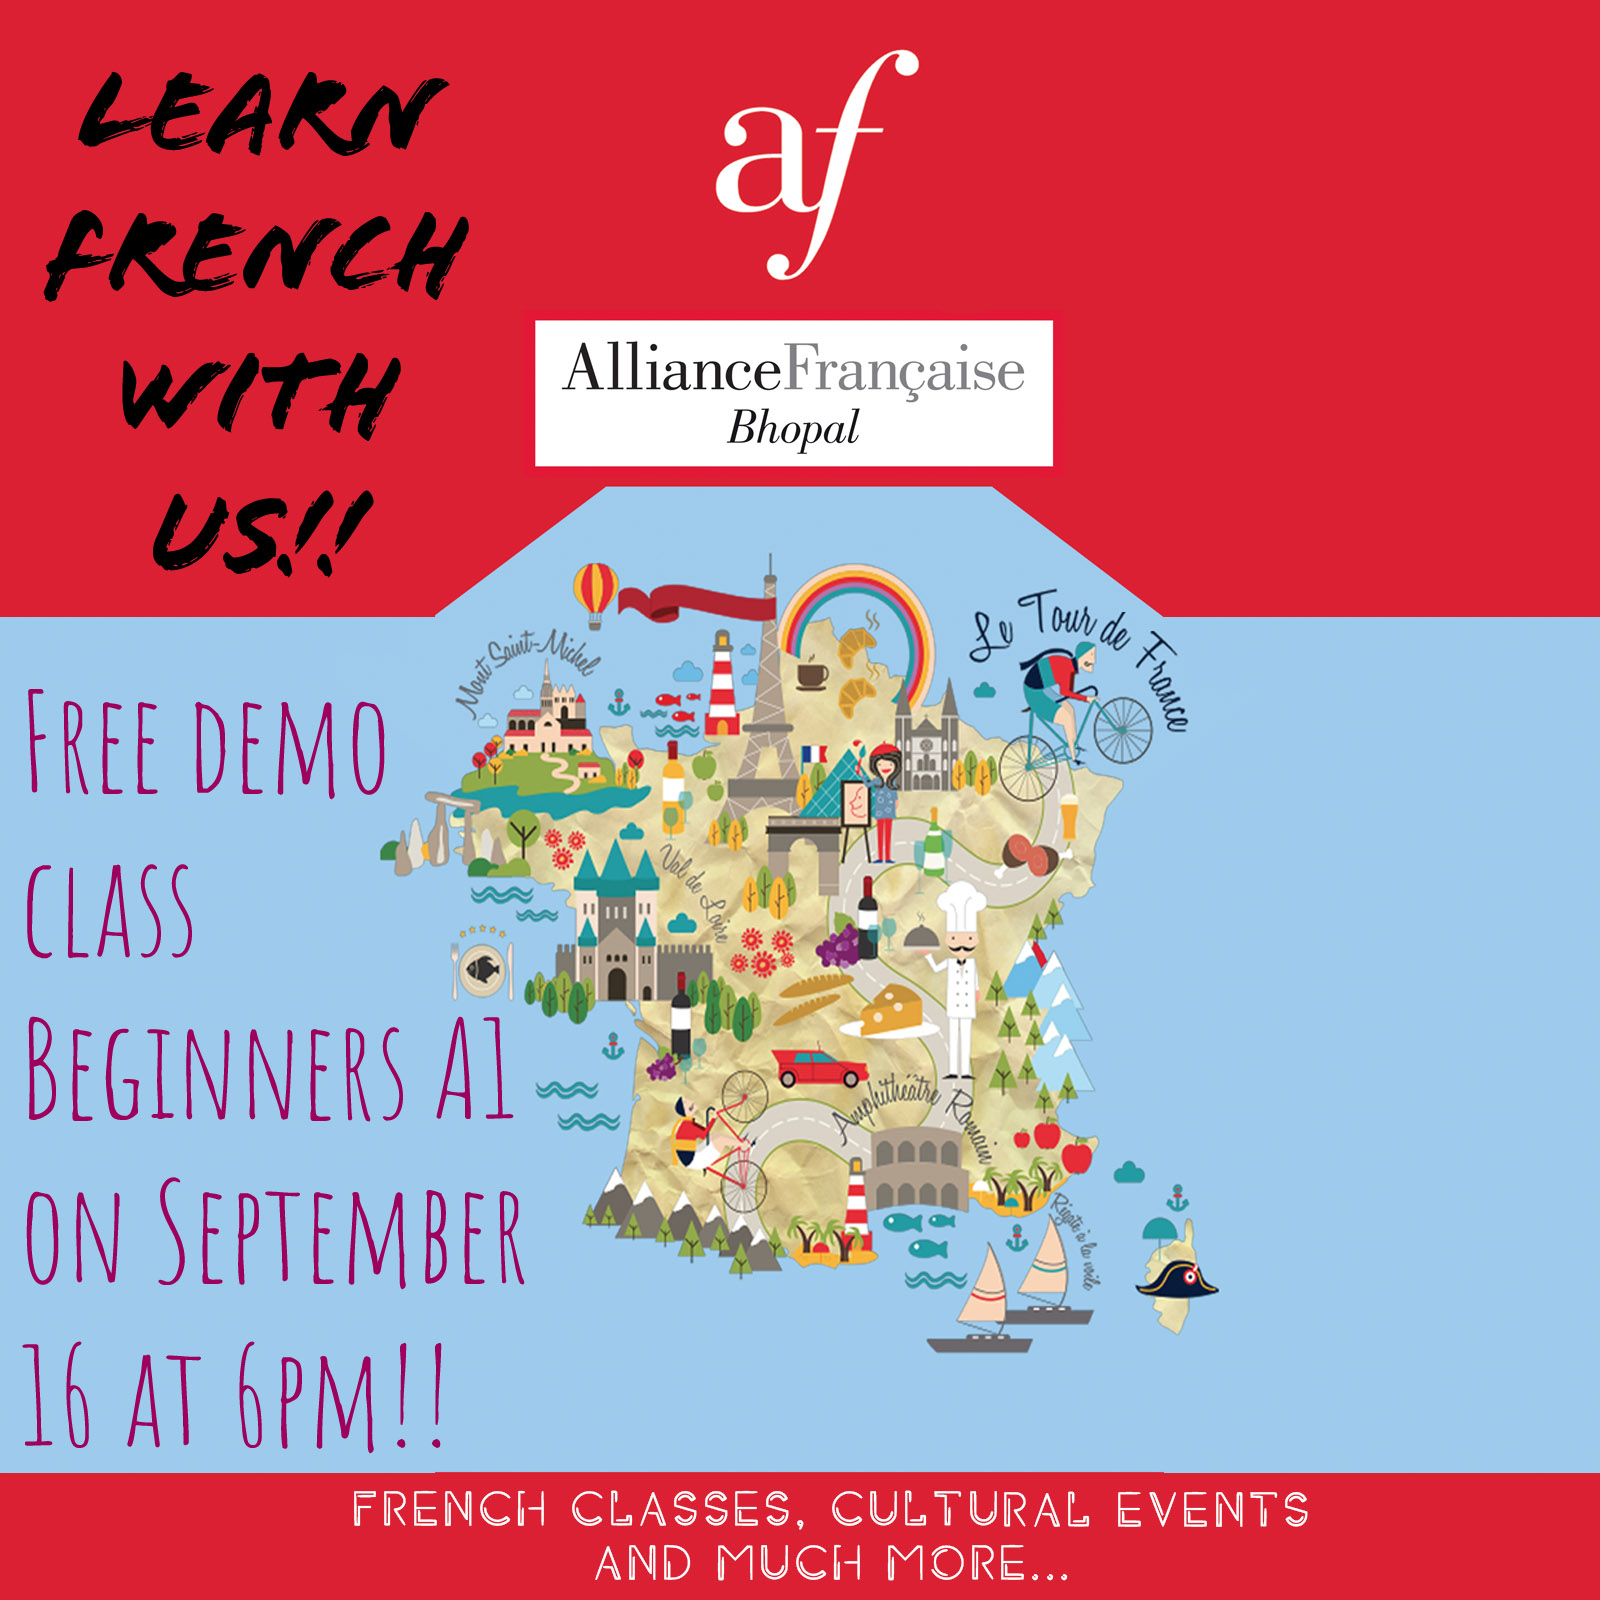 Learn French with us!